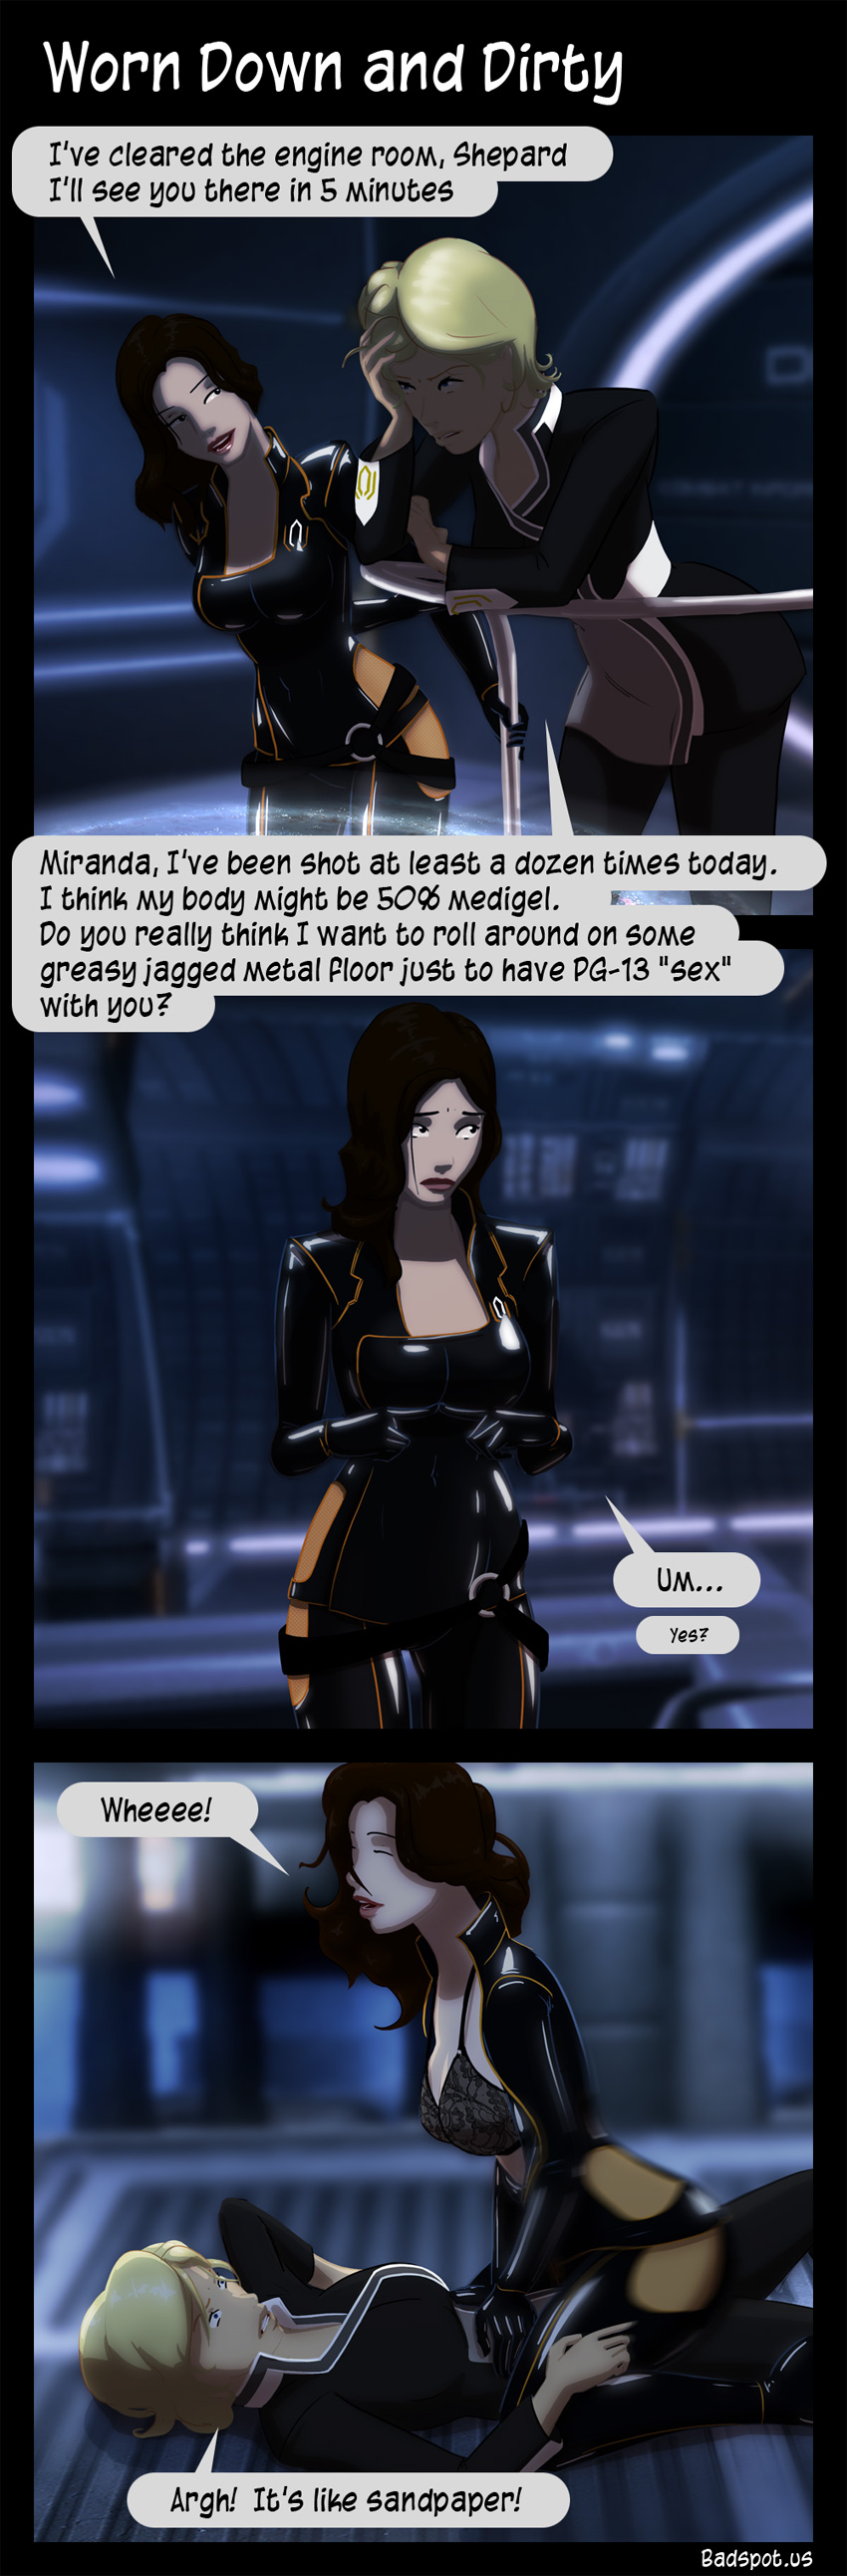 Mass-Effect-Comic-Worn-Down-and-Dirty.jpg